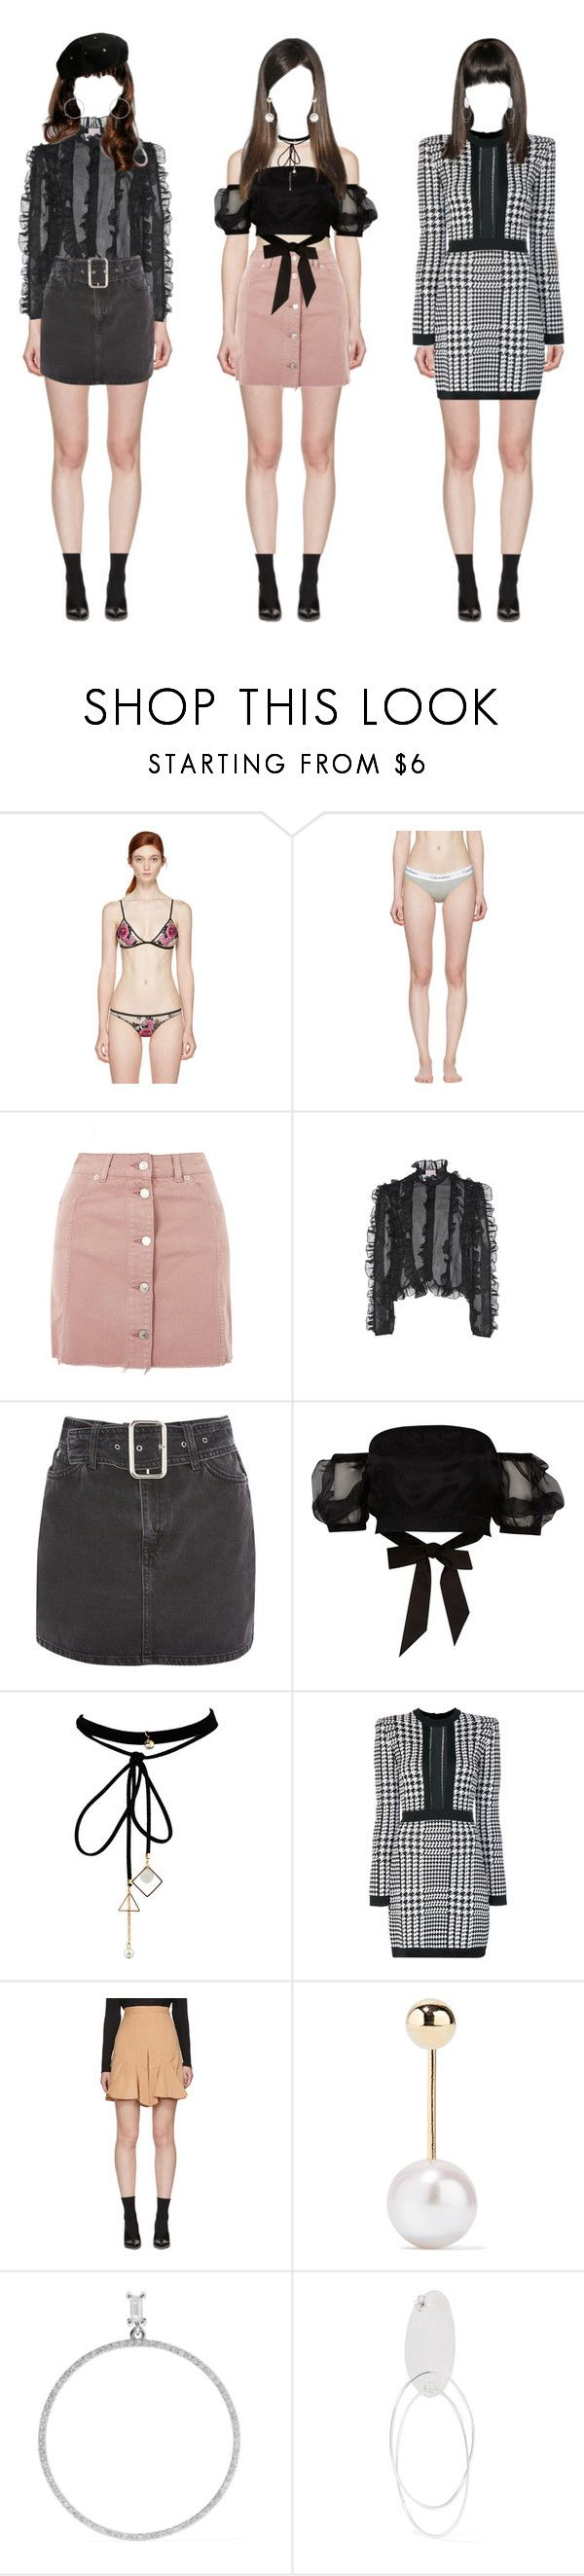 """HIROSE - Last Love MV Outfits"" by official-gold ❤ liked on Polyvore featuring Fleur du Mal, Calvin Klein Underwear, Topshop, Giamba, River Island, WithChic, Balmain, Isabel Marant, Sophie Bille Brahe and Ileana Makri"